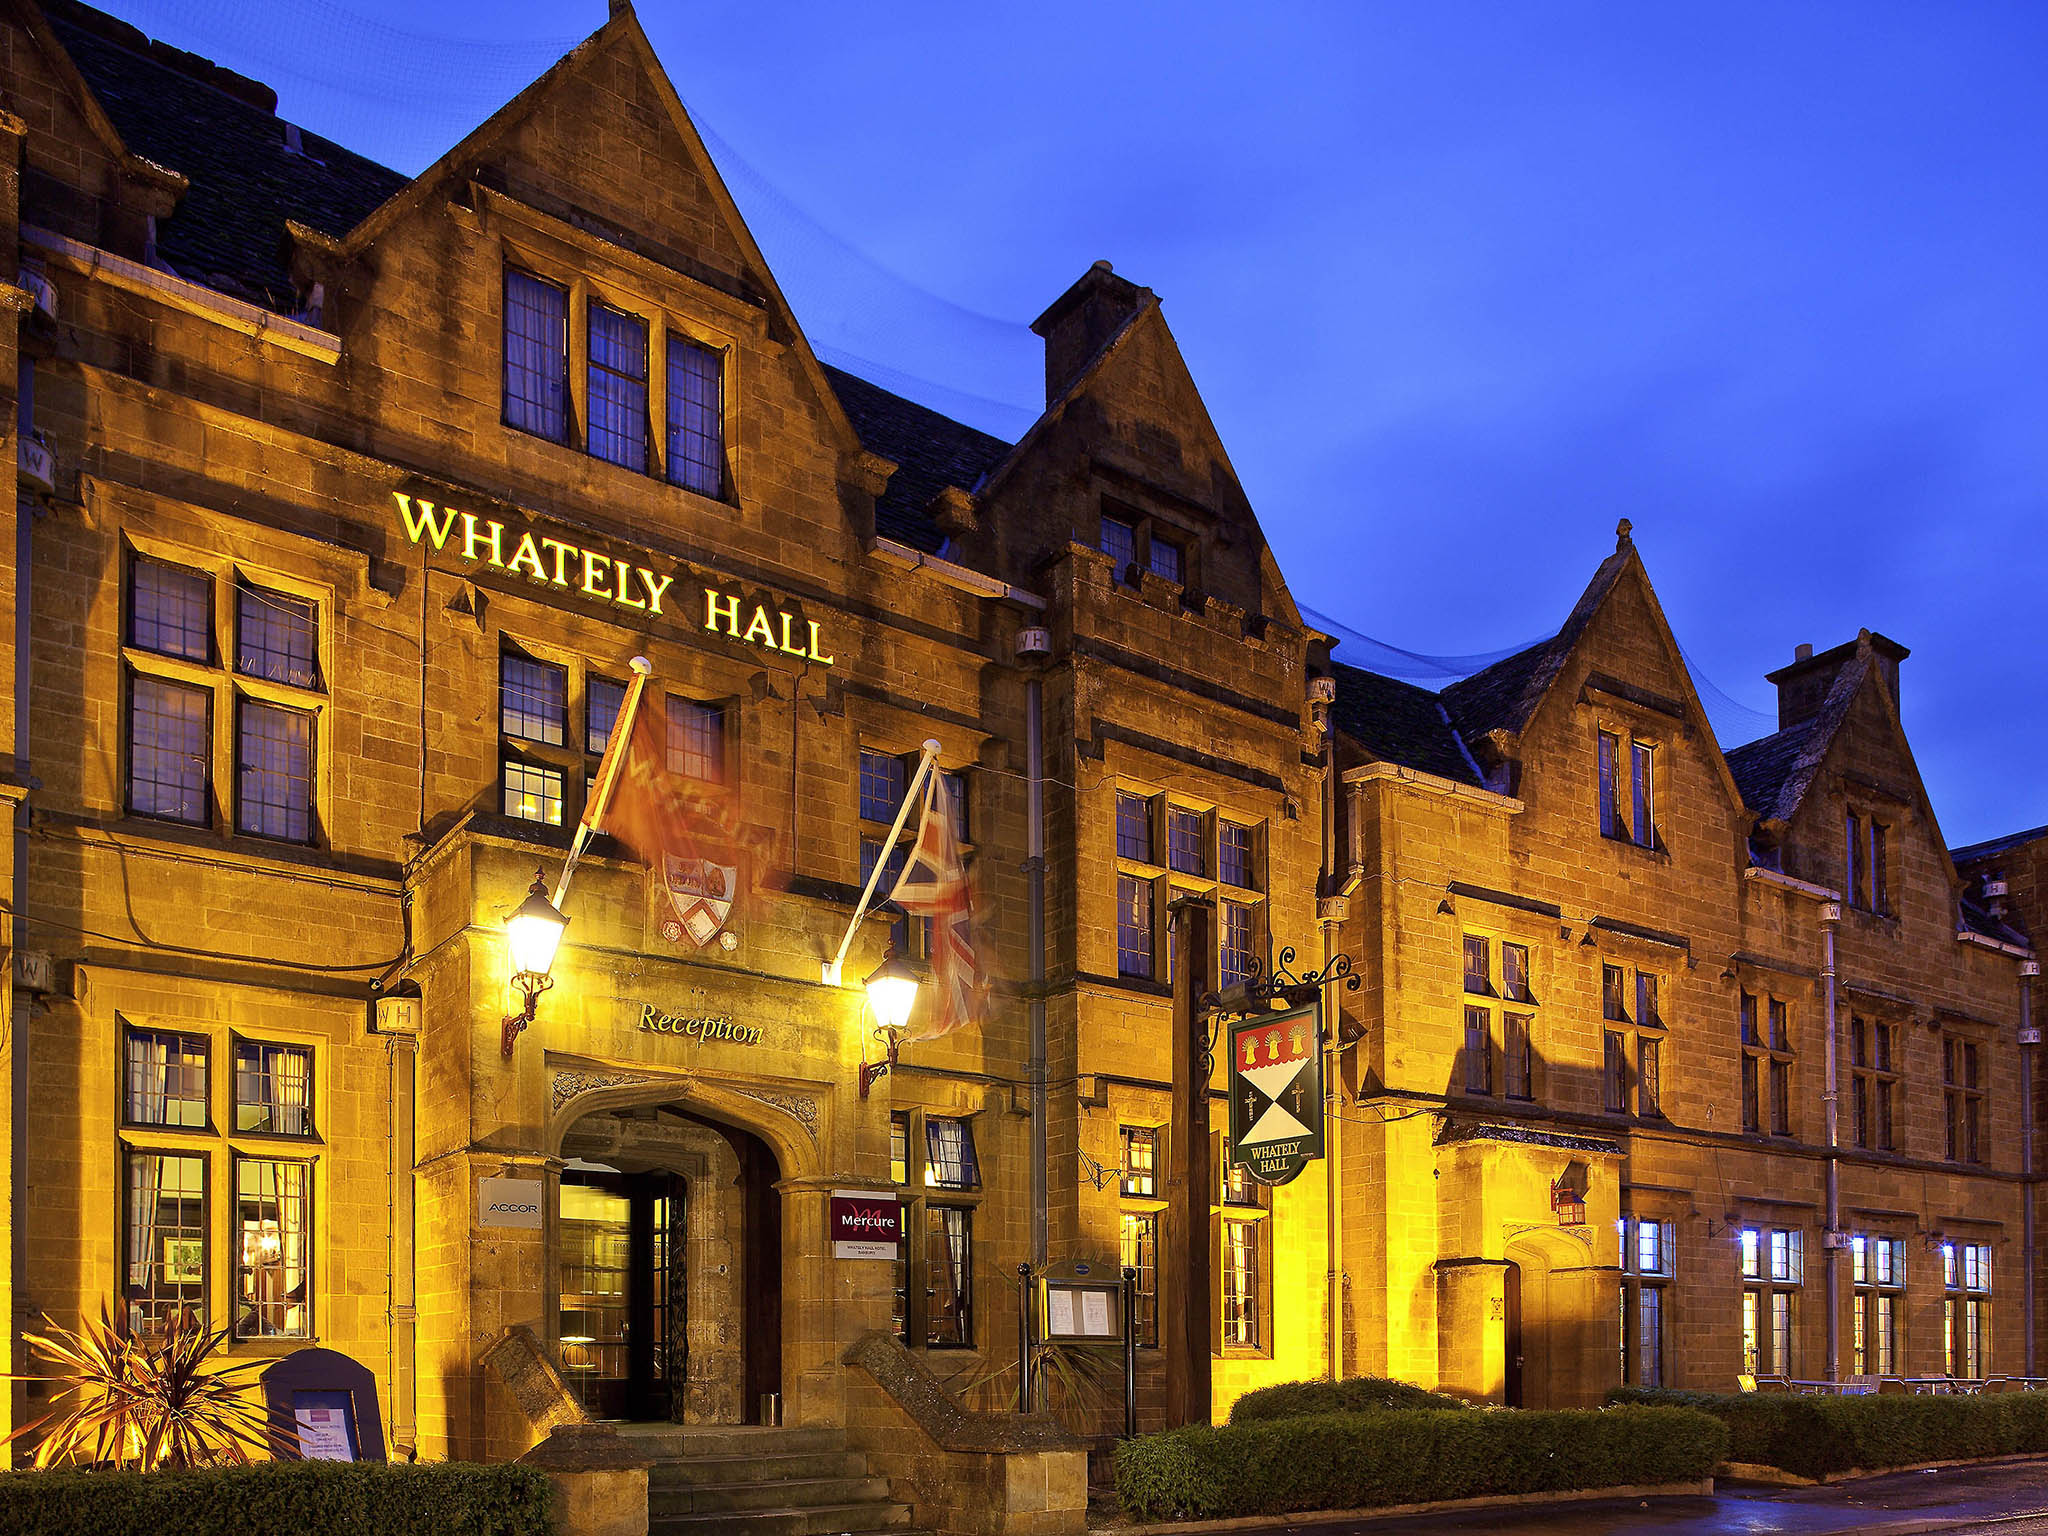 Hotel – Mercure Banbury Whately Hall Hotel